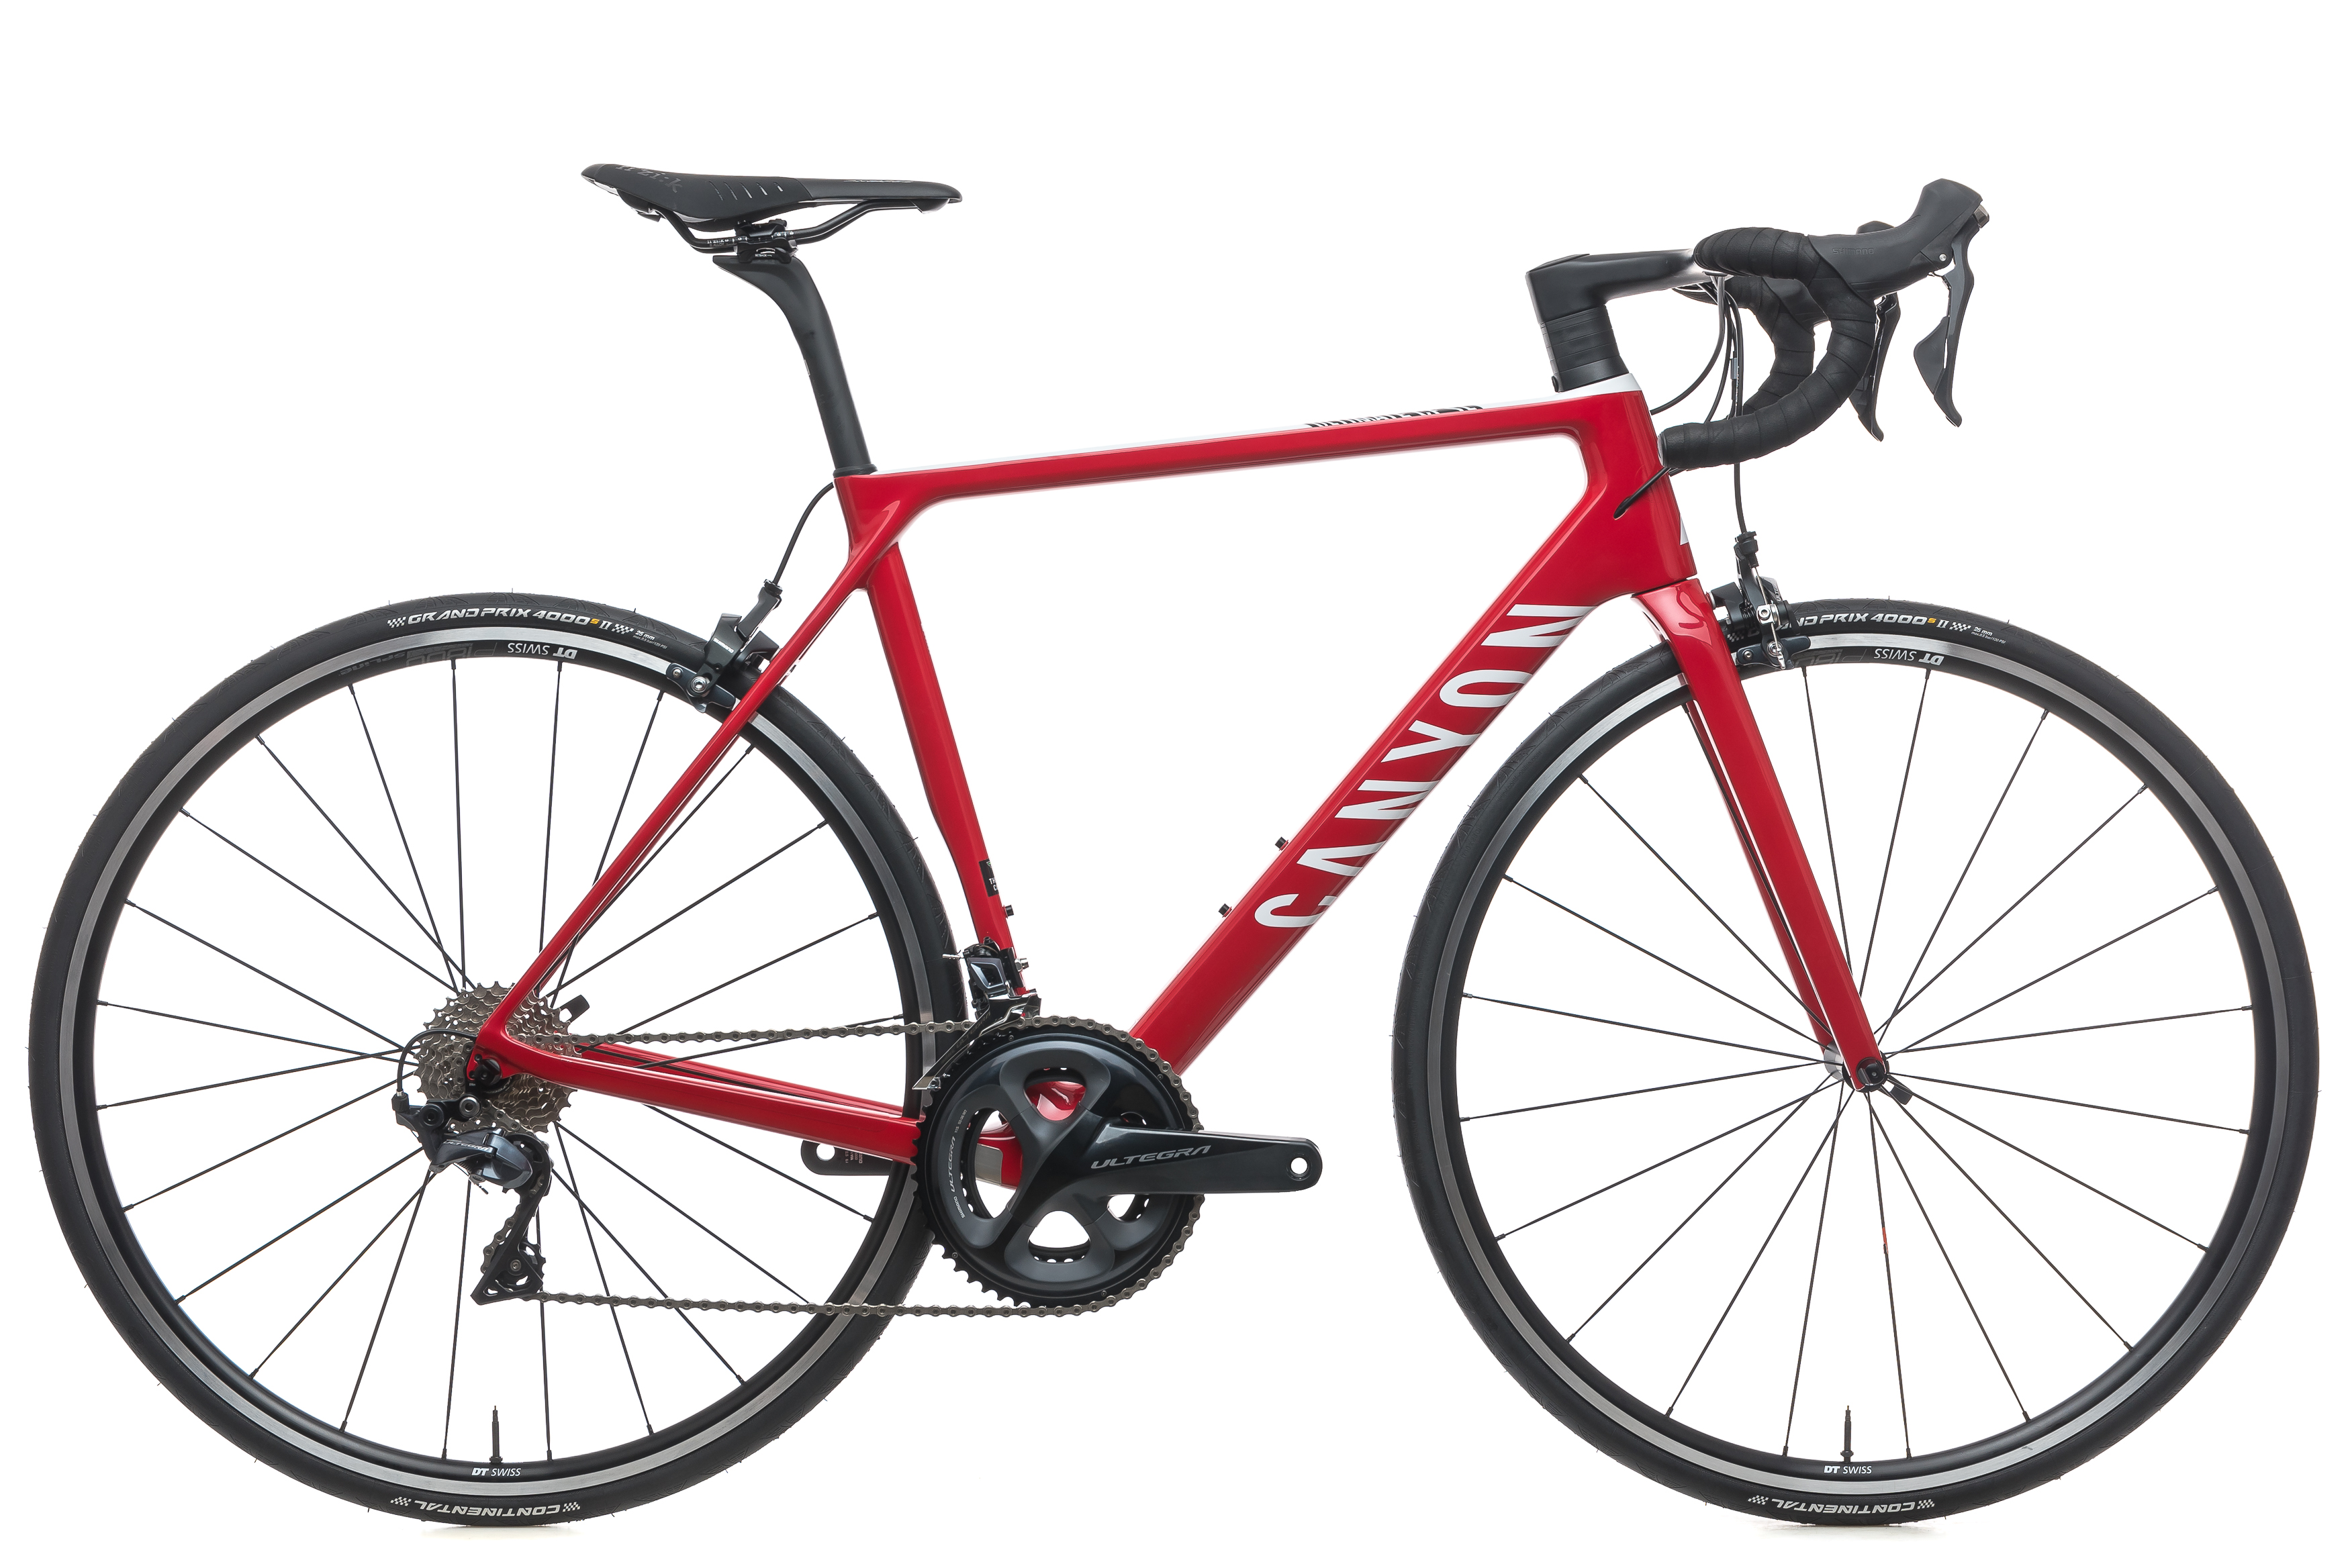 Canyon Road Bike Frame Size